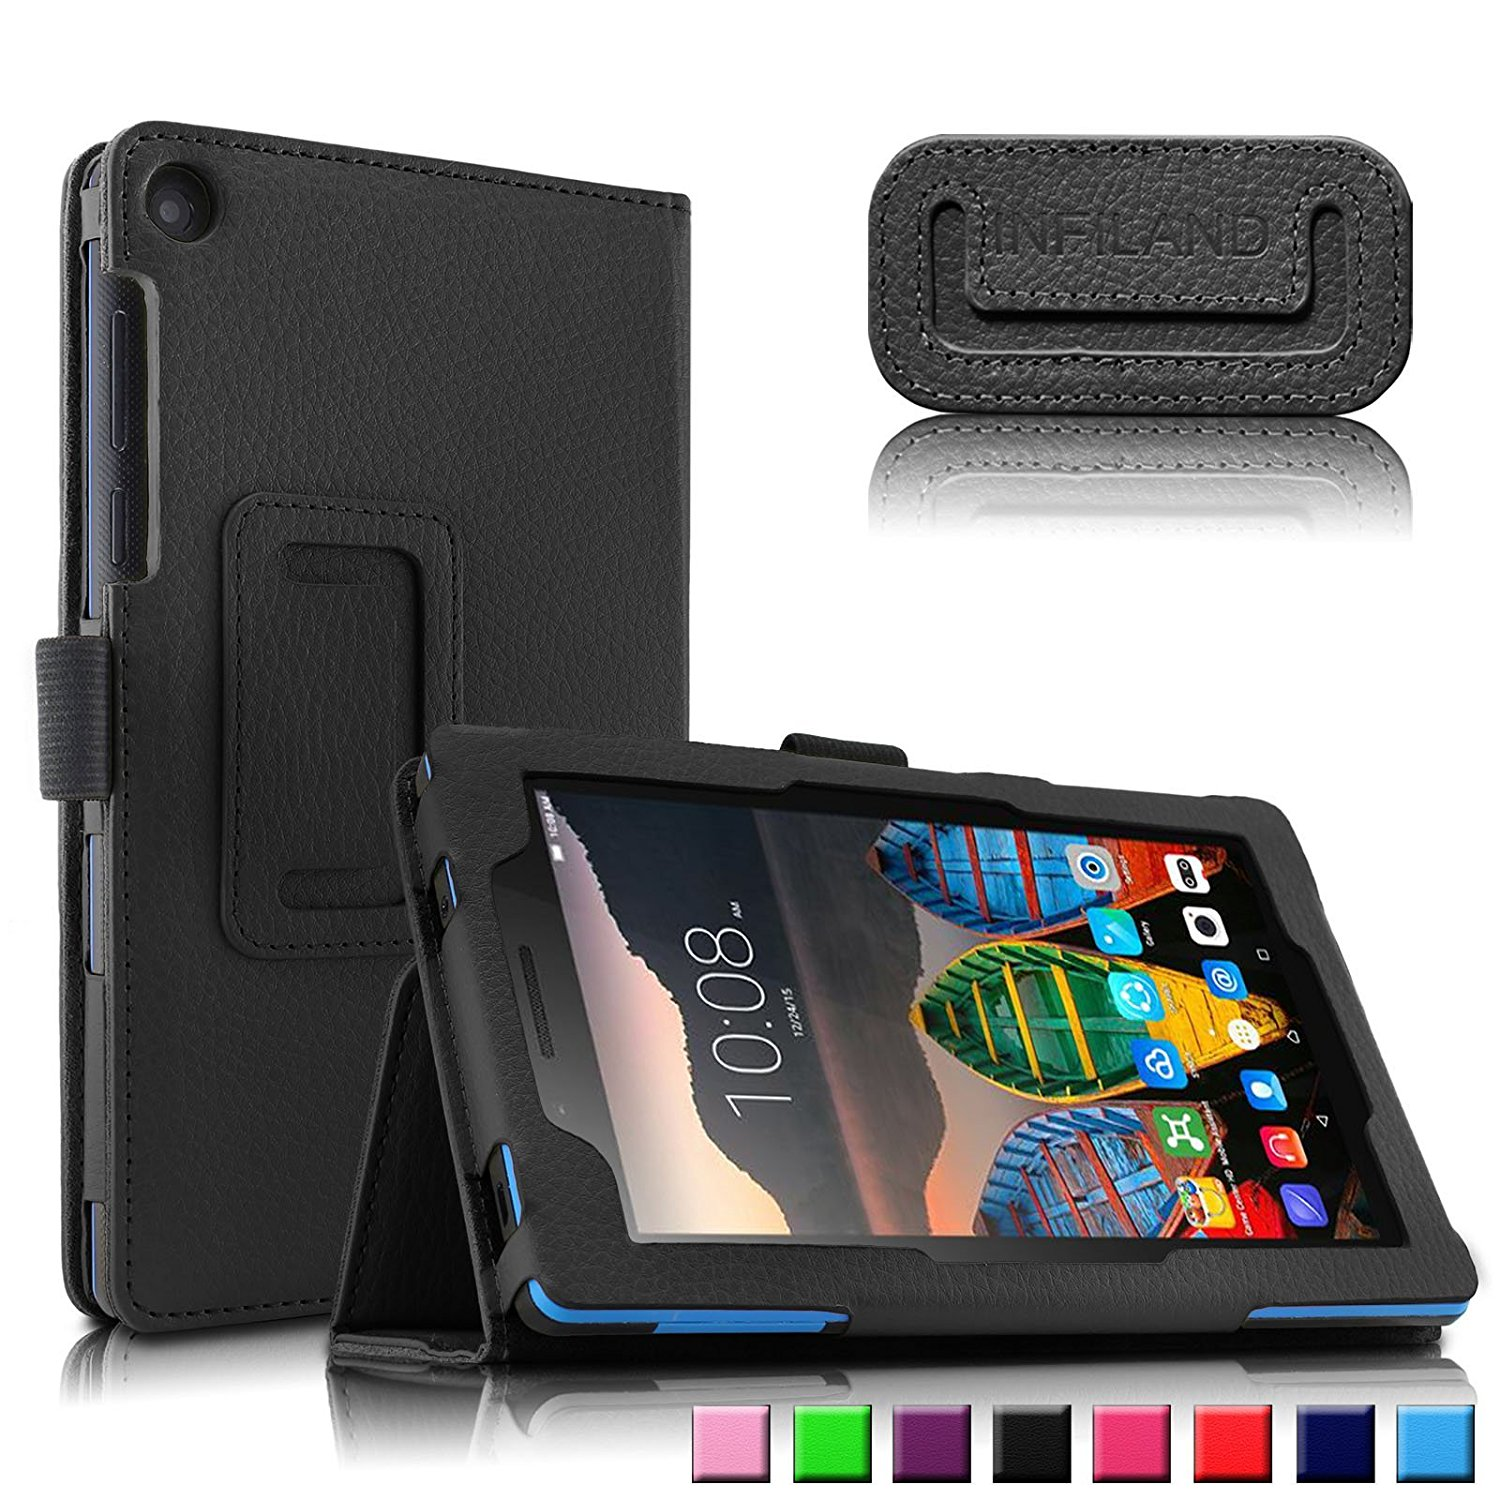 Cover for Lenovo Tab3 7 Essential 710F 7.0 Tablet Case Flip PU Leather Case Protective Shell Case for Tab3 710i Funda Case